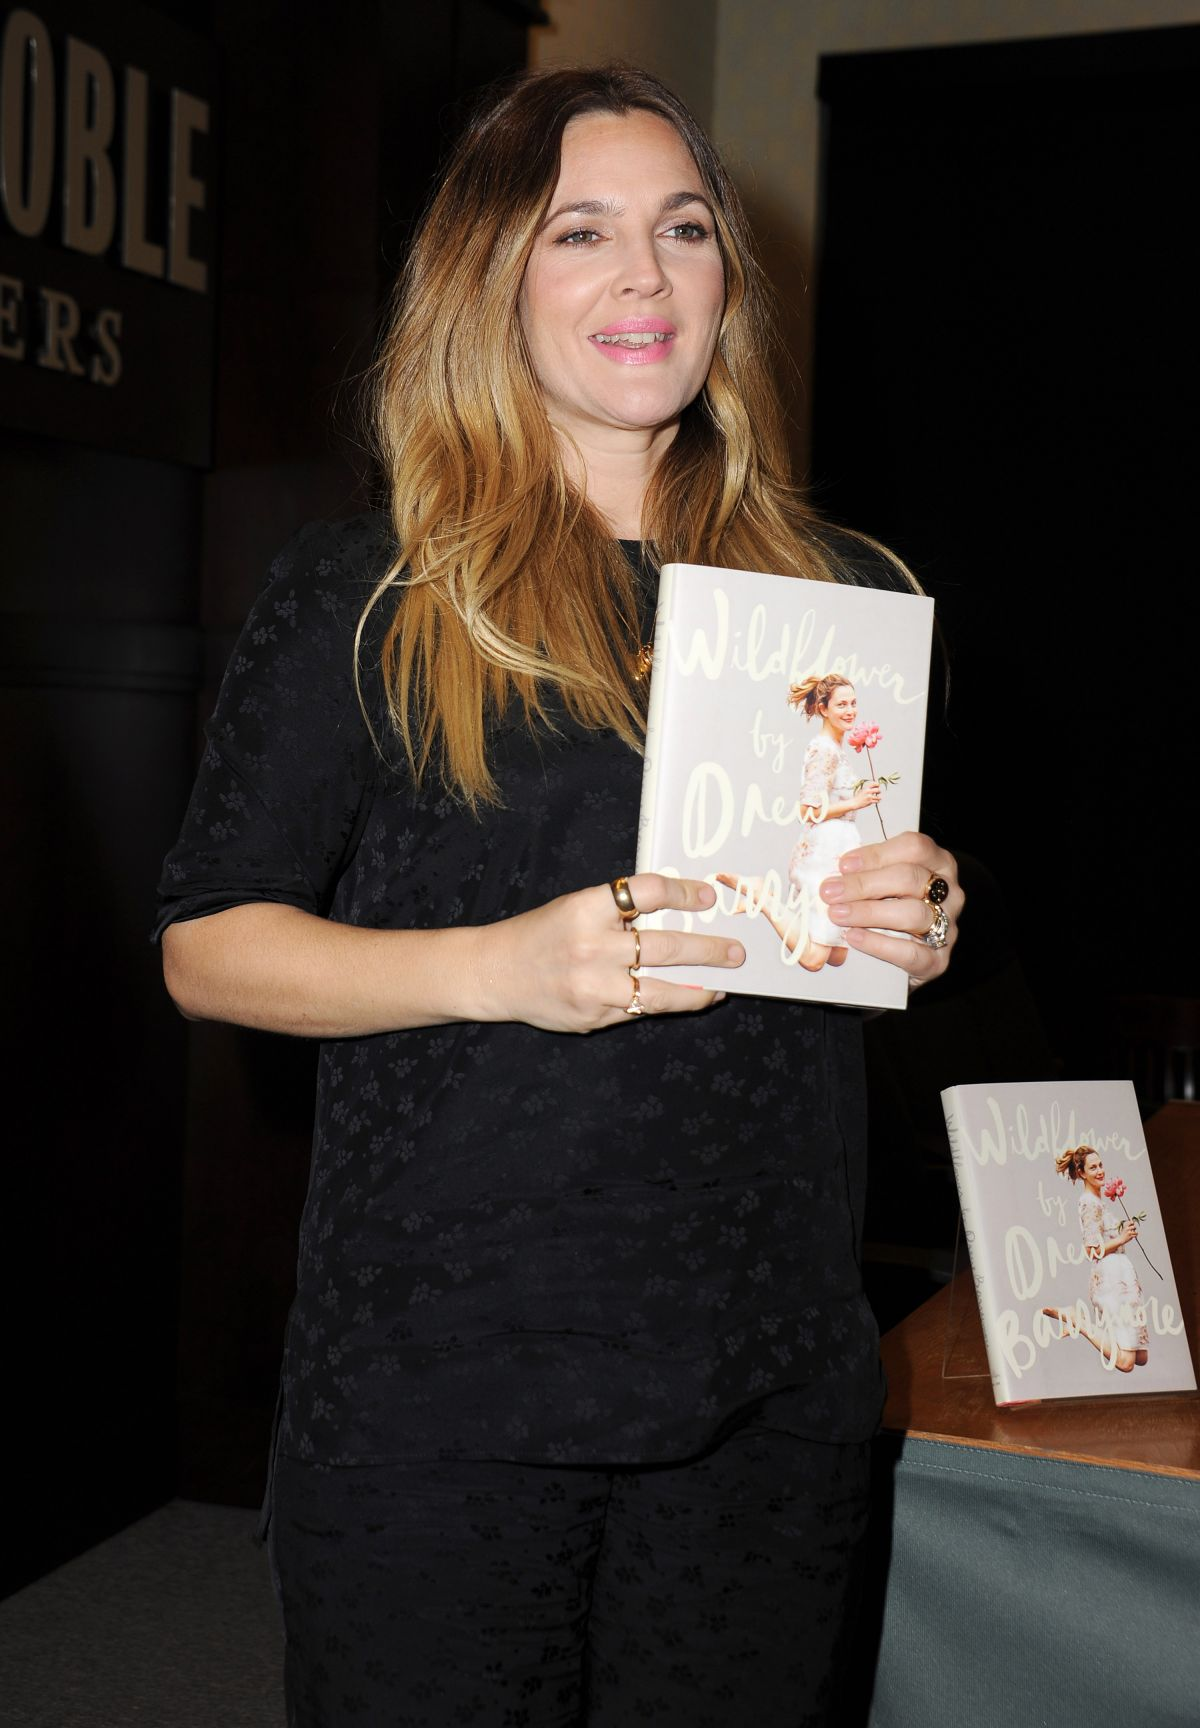 DREW BARRYMORE at Wildflower Book Signing at Barnes & Noble